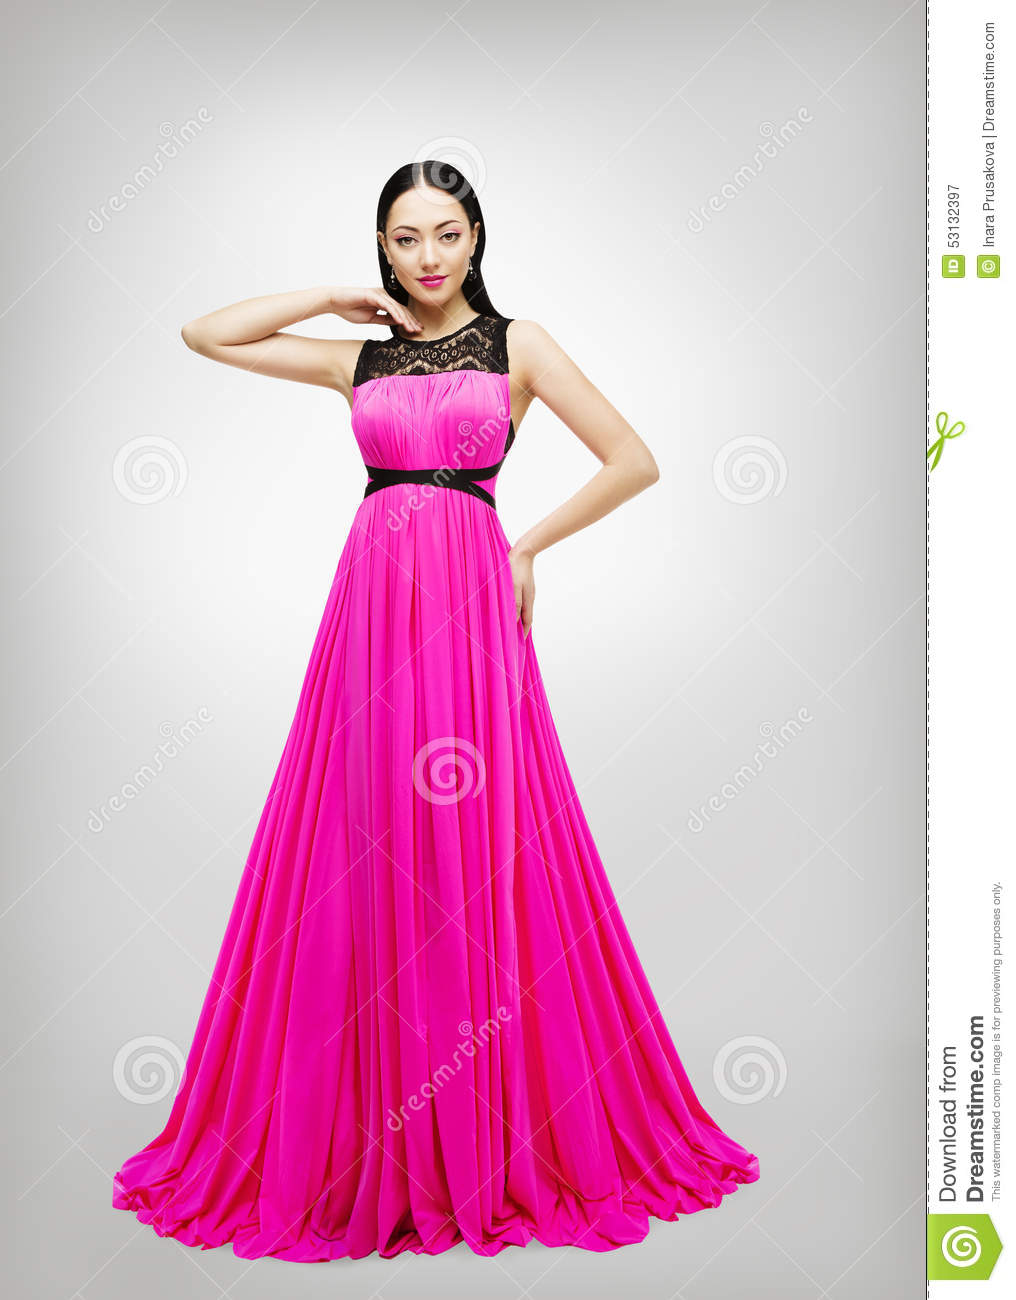 Download Foto Model Long Dress Young Woman Fashion Model Pink Gown High Waist Stock